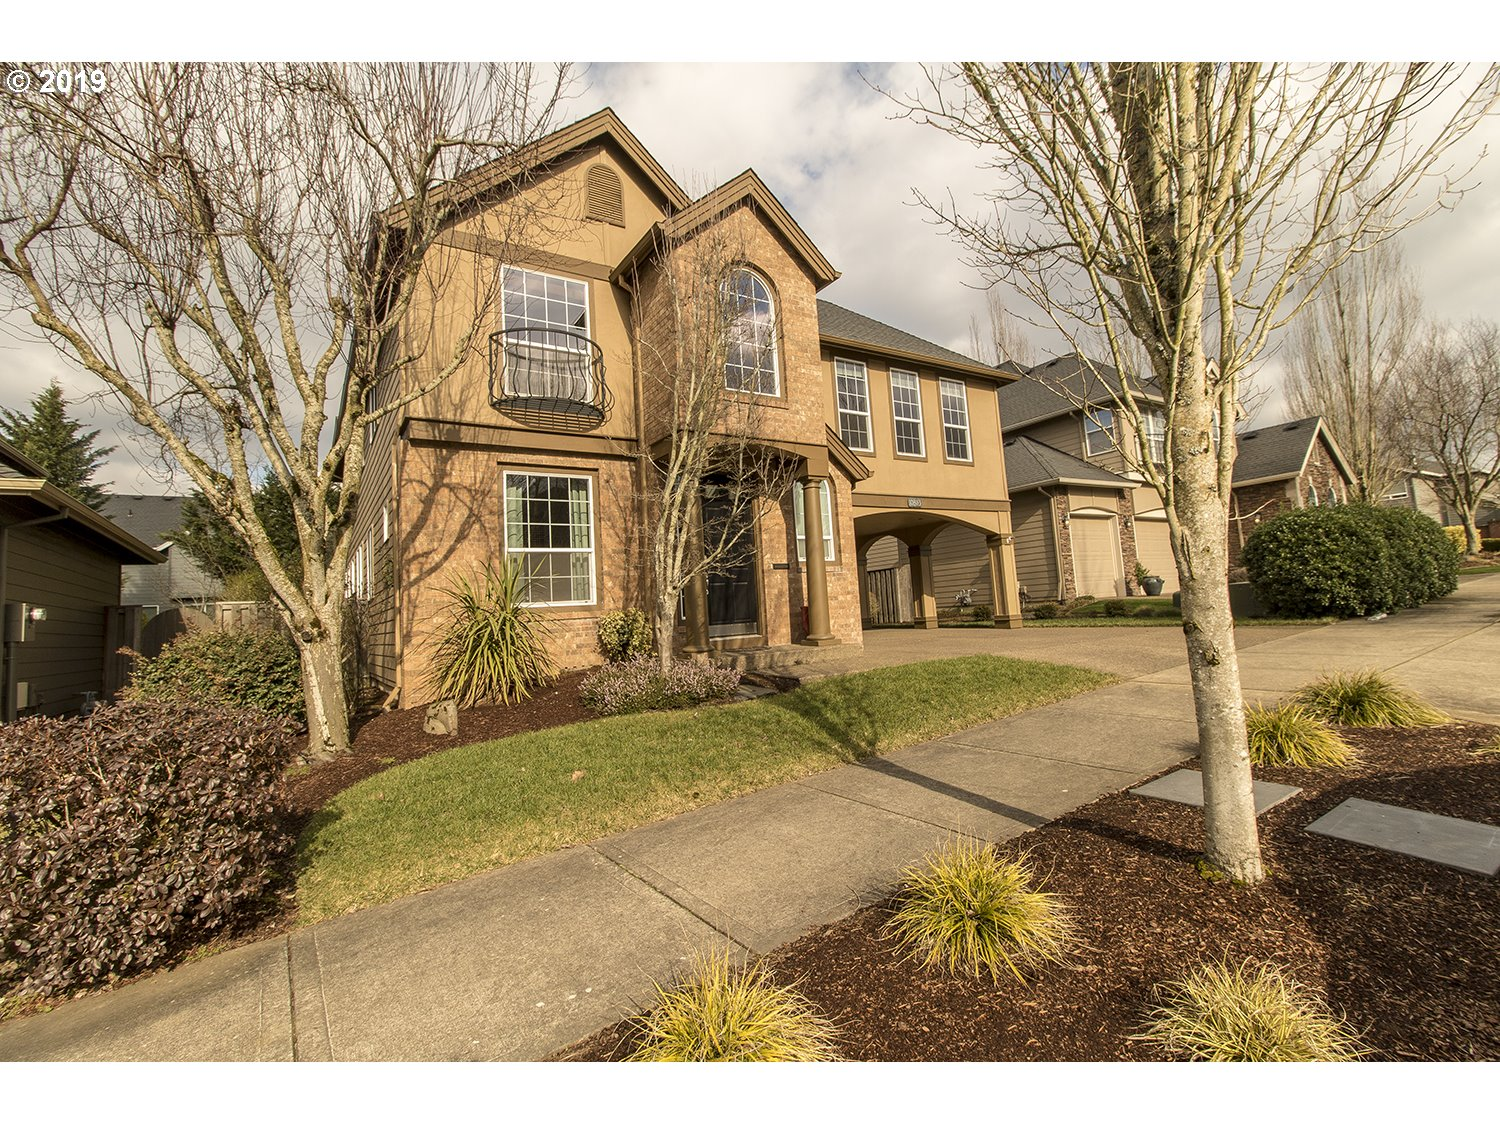 Gorgeous custom home-Very unique-Sunny & bright w/Beautiful real hardwood floors-Open floor plan & high ceilings. Large Kitchen Great Room  has granite cook island-Eat bar/gas range/eating area & cool office desk area. Kitchen opens to living room w/gas fireplace & slider to back yard. Huge Family room is steps down from bedrooms. Master has soaktub & glass shower. Den/4th bedroom has french doors. Yard is beautifully landscaped w/shed